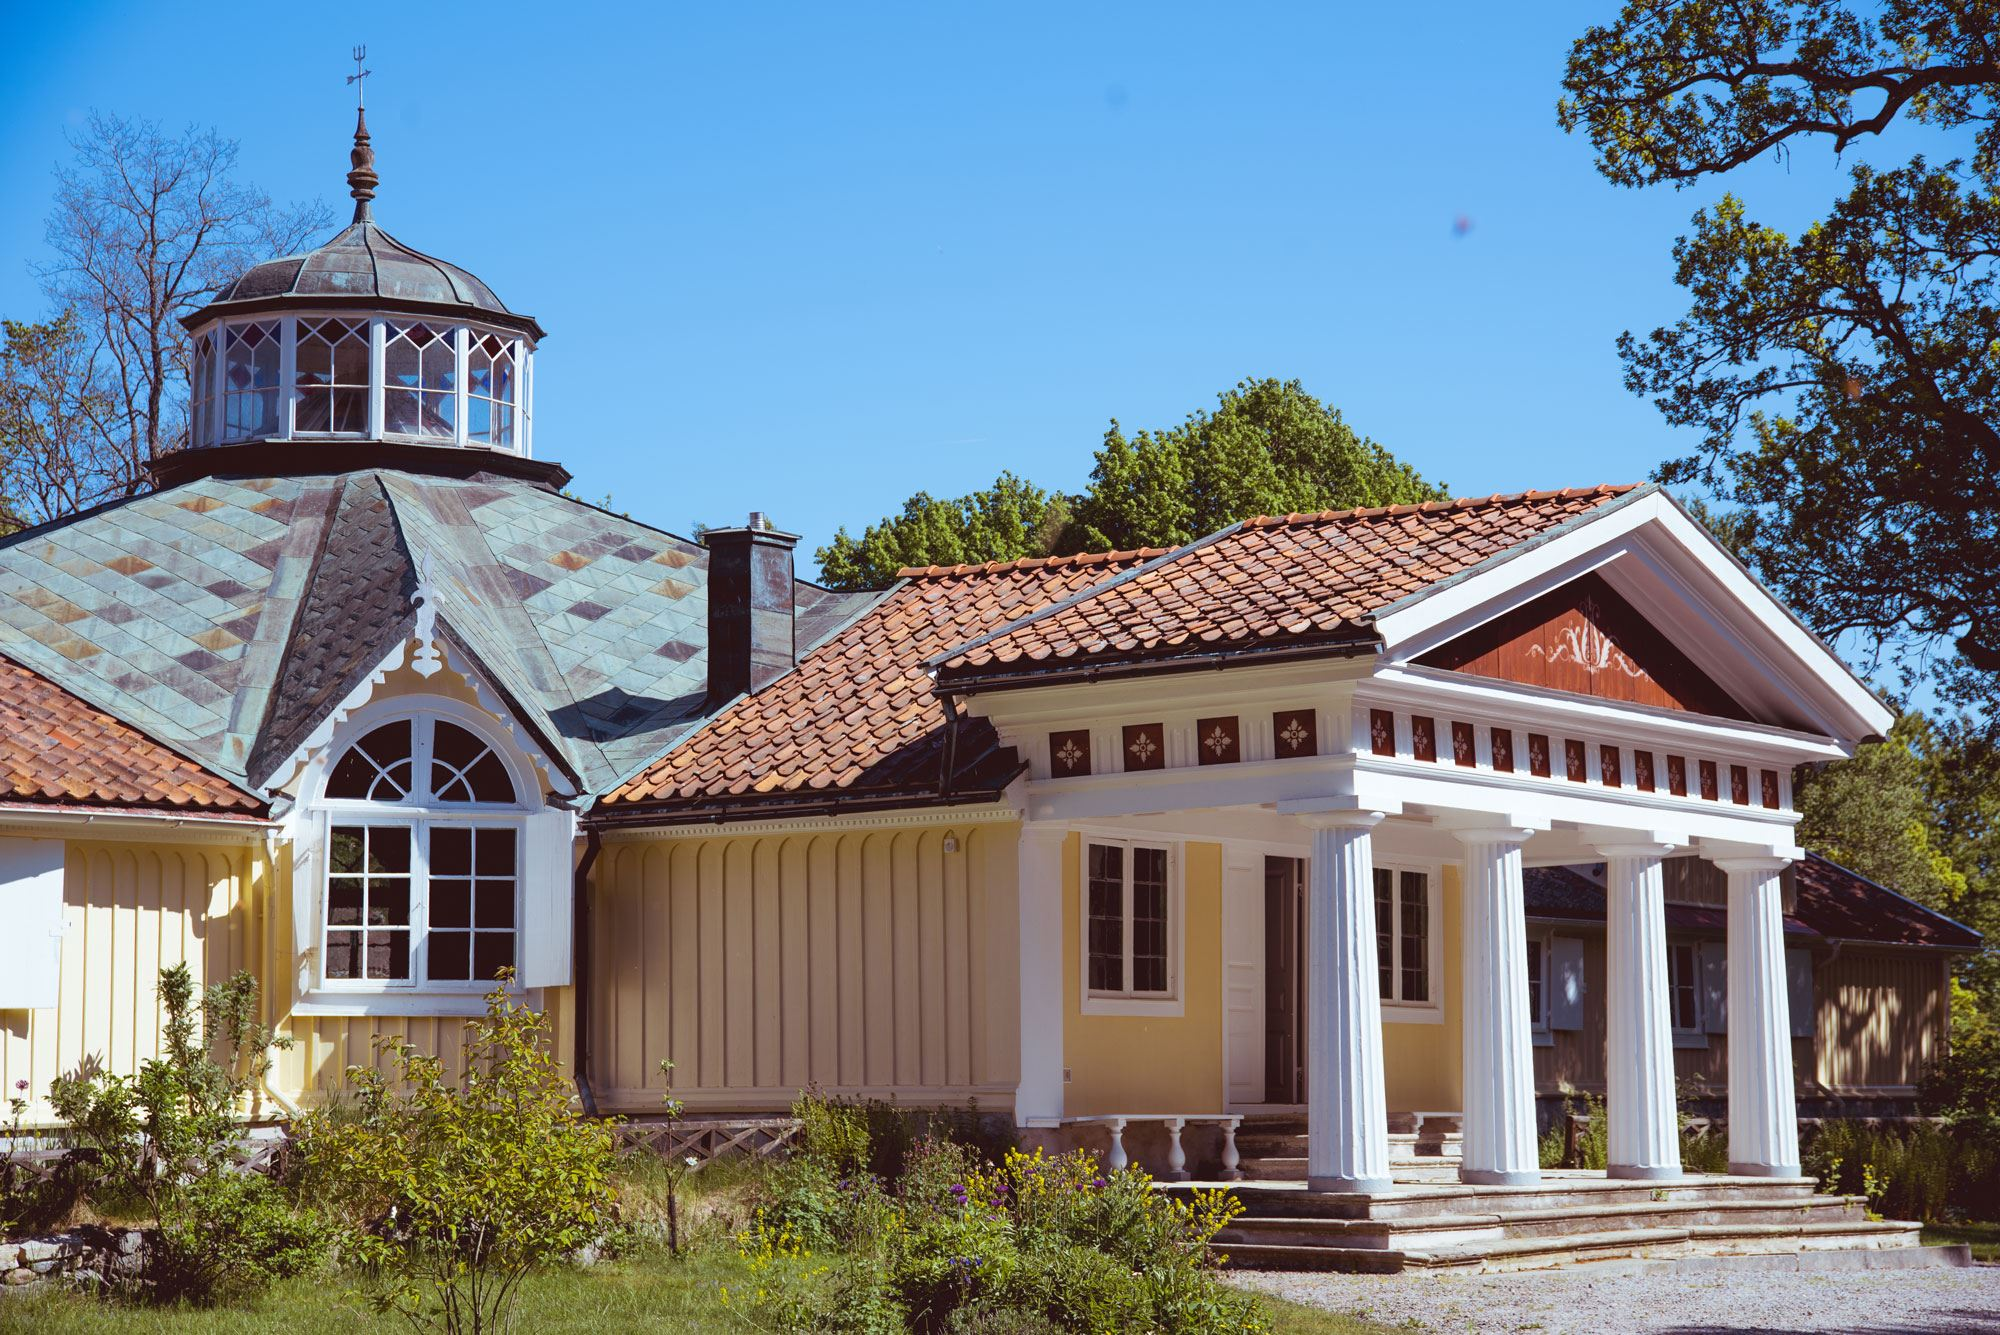 Guided tour - Skärva manor